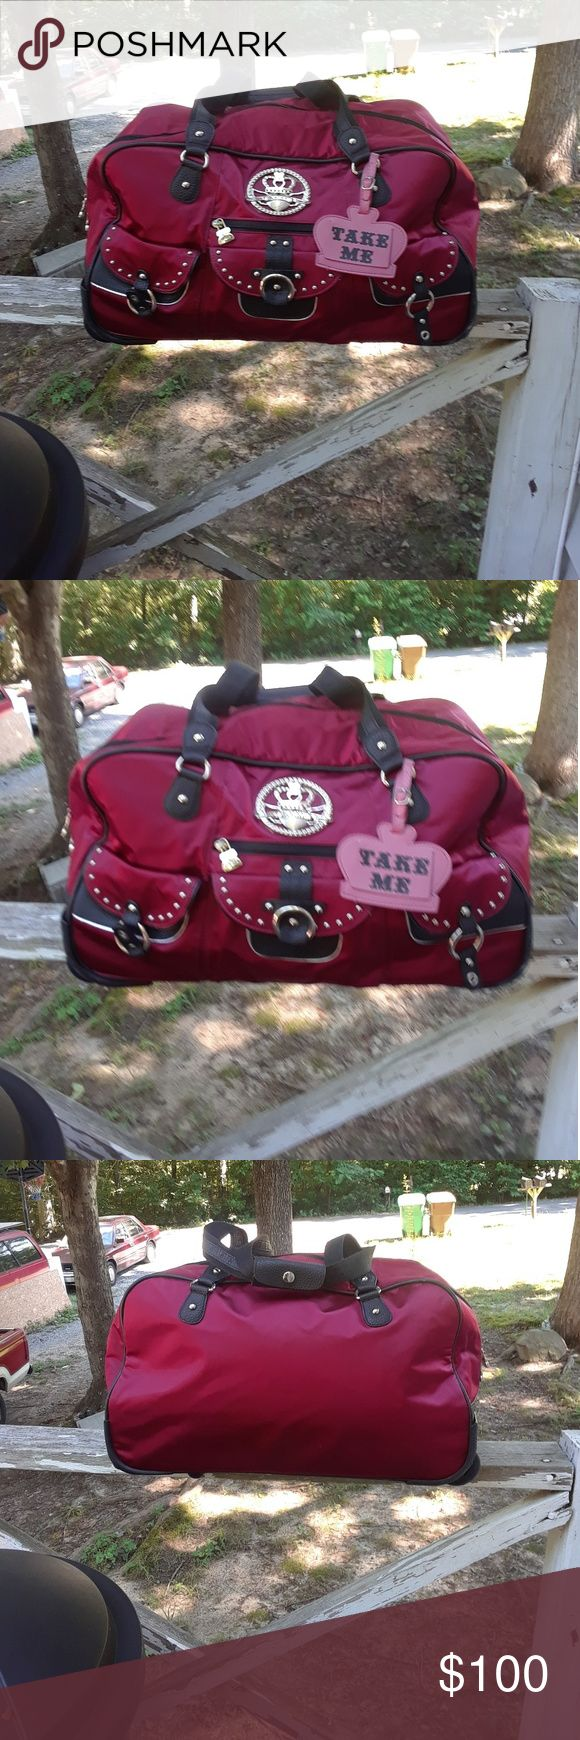 "Van Kathy Zeeland women's luggage This is a used Van Kathy Zeeland women's luggage.,it is dark pink light pink and black.it is 21"" in length,11"" in height and 10.5"" wide.it has 3 snap pockets and 1 small zipper pocket on the front.it has 2 open pockets and 1 small zipper pocket on the inside.it zips on top.it has a shoulder handle and retractable handle metal handle.it has 2 wheels for easy pulling.there is some sign of use.there are no holes or tears on either or stains.Please view the…"